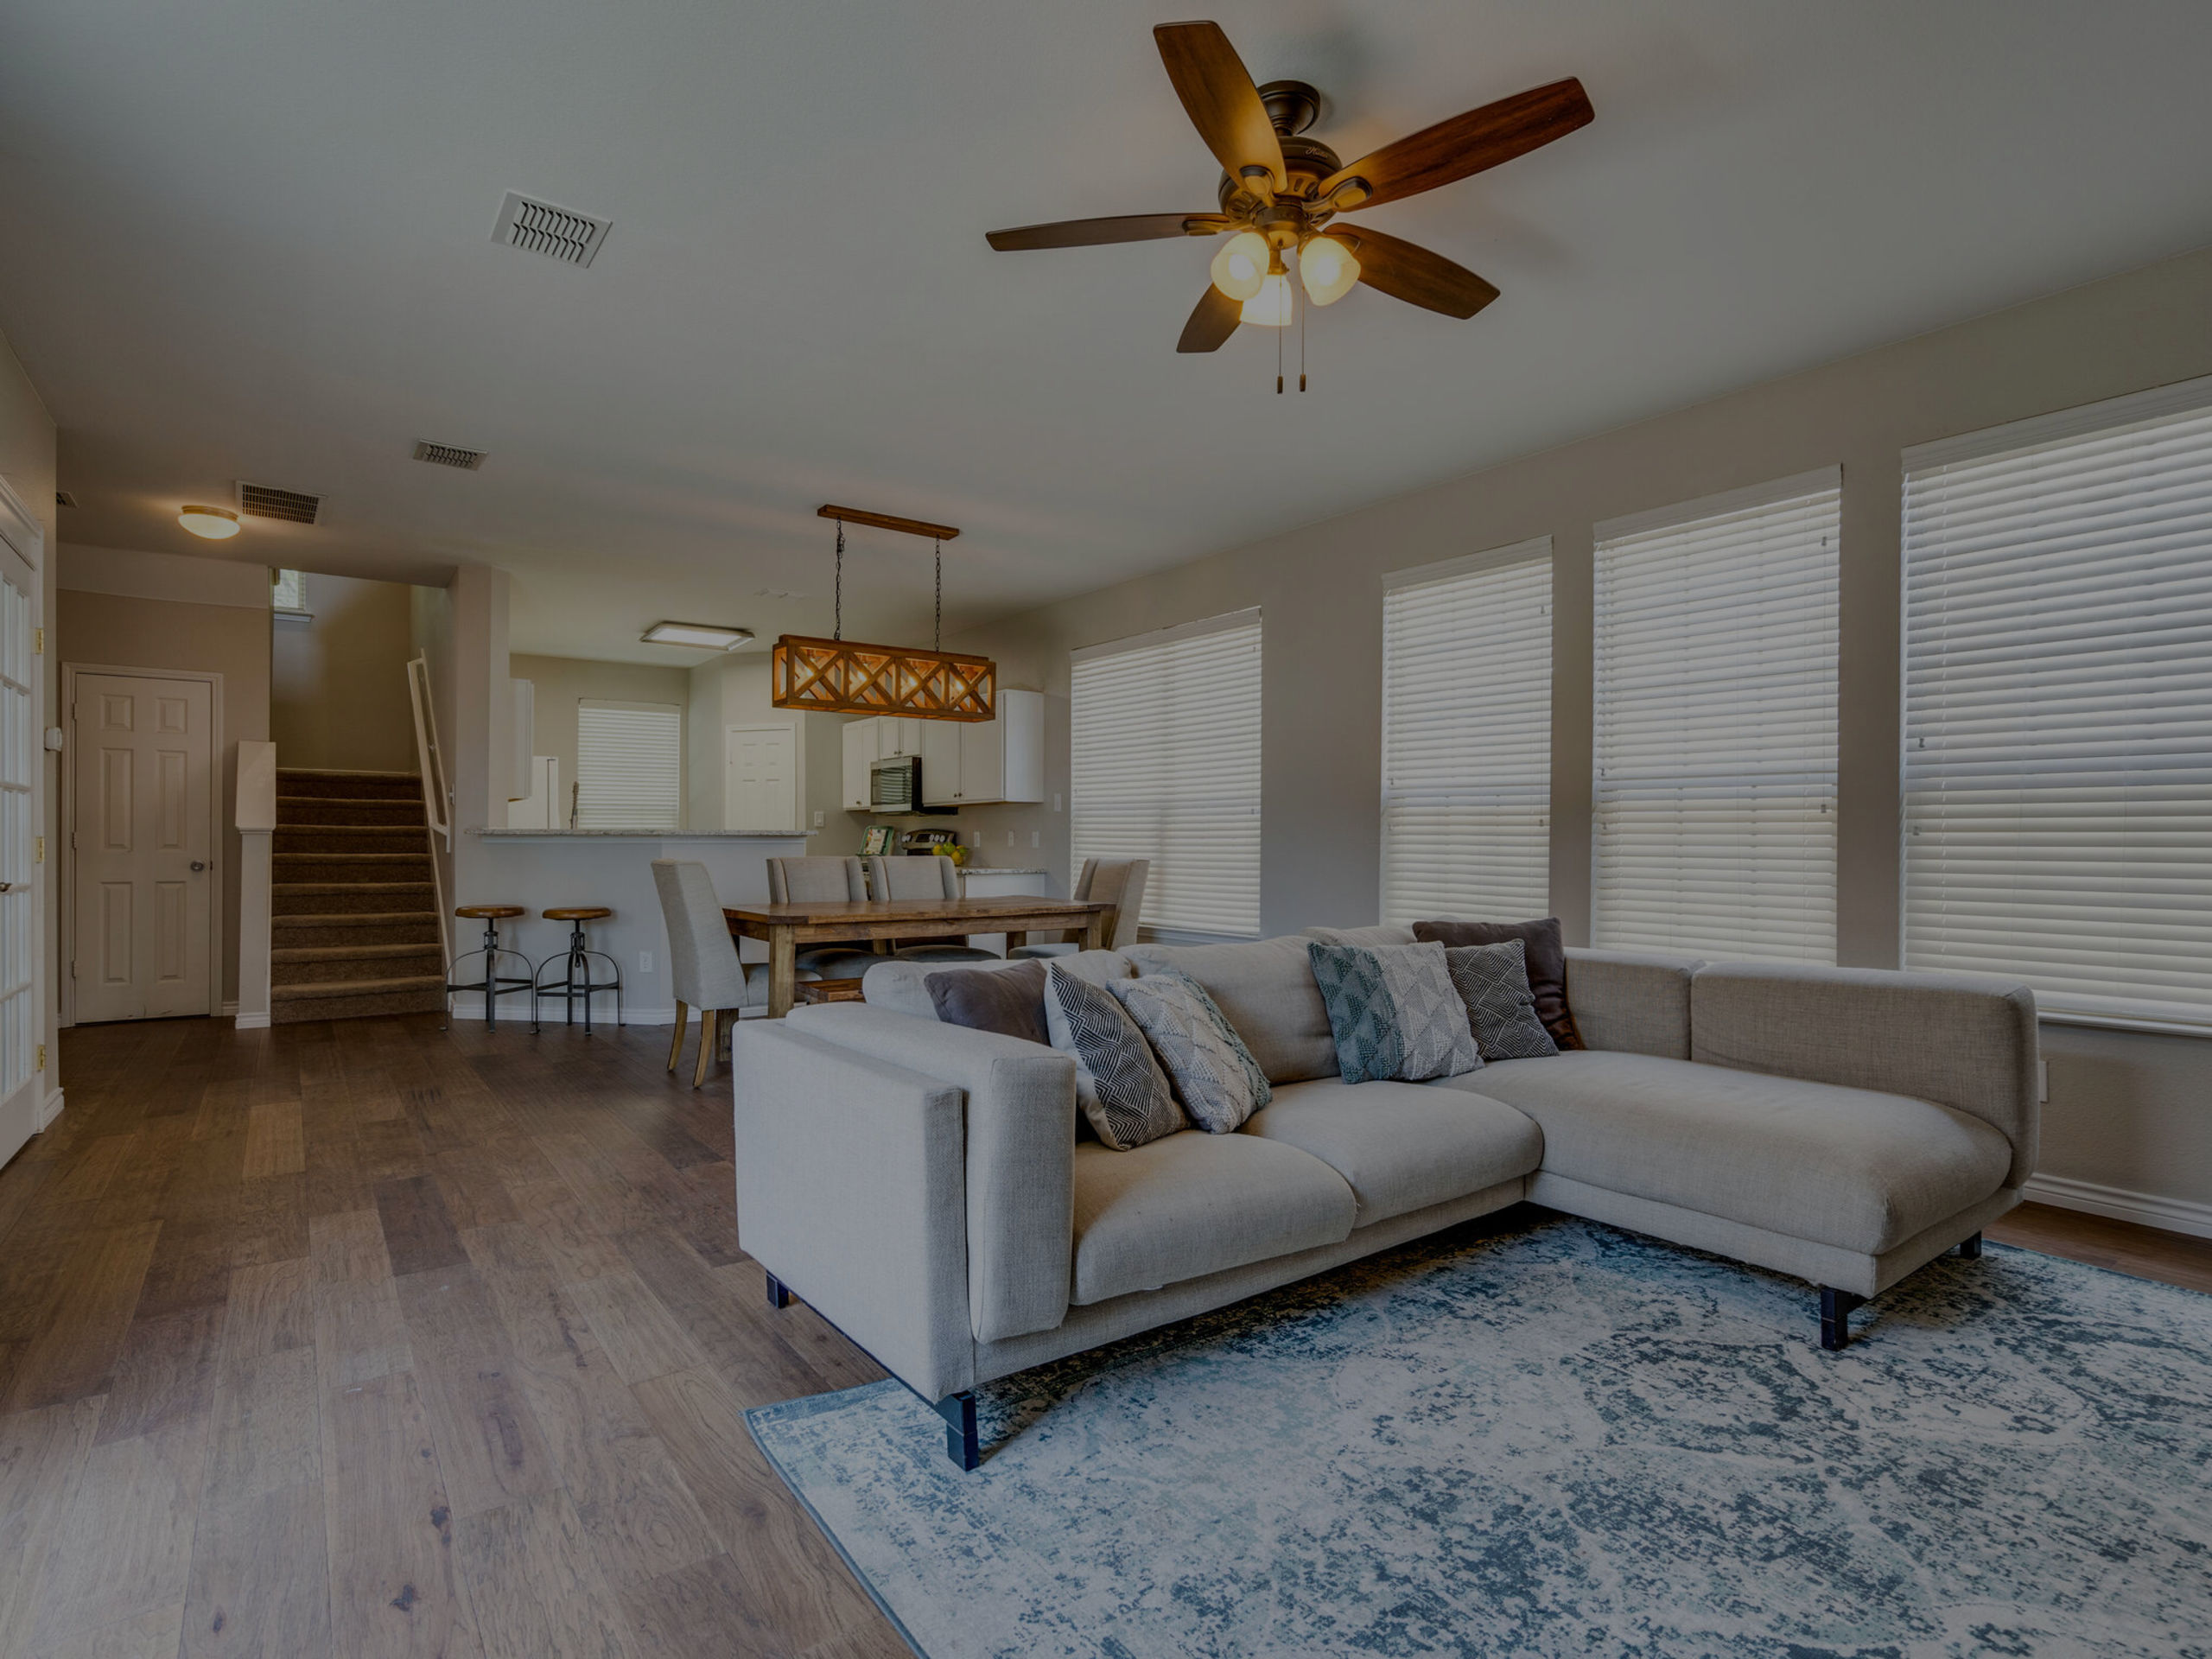 This beautiful 3 bed, 2 ½ bath house located in the Harvest Bend Neighborhood in McKinney just hit the market